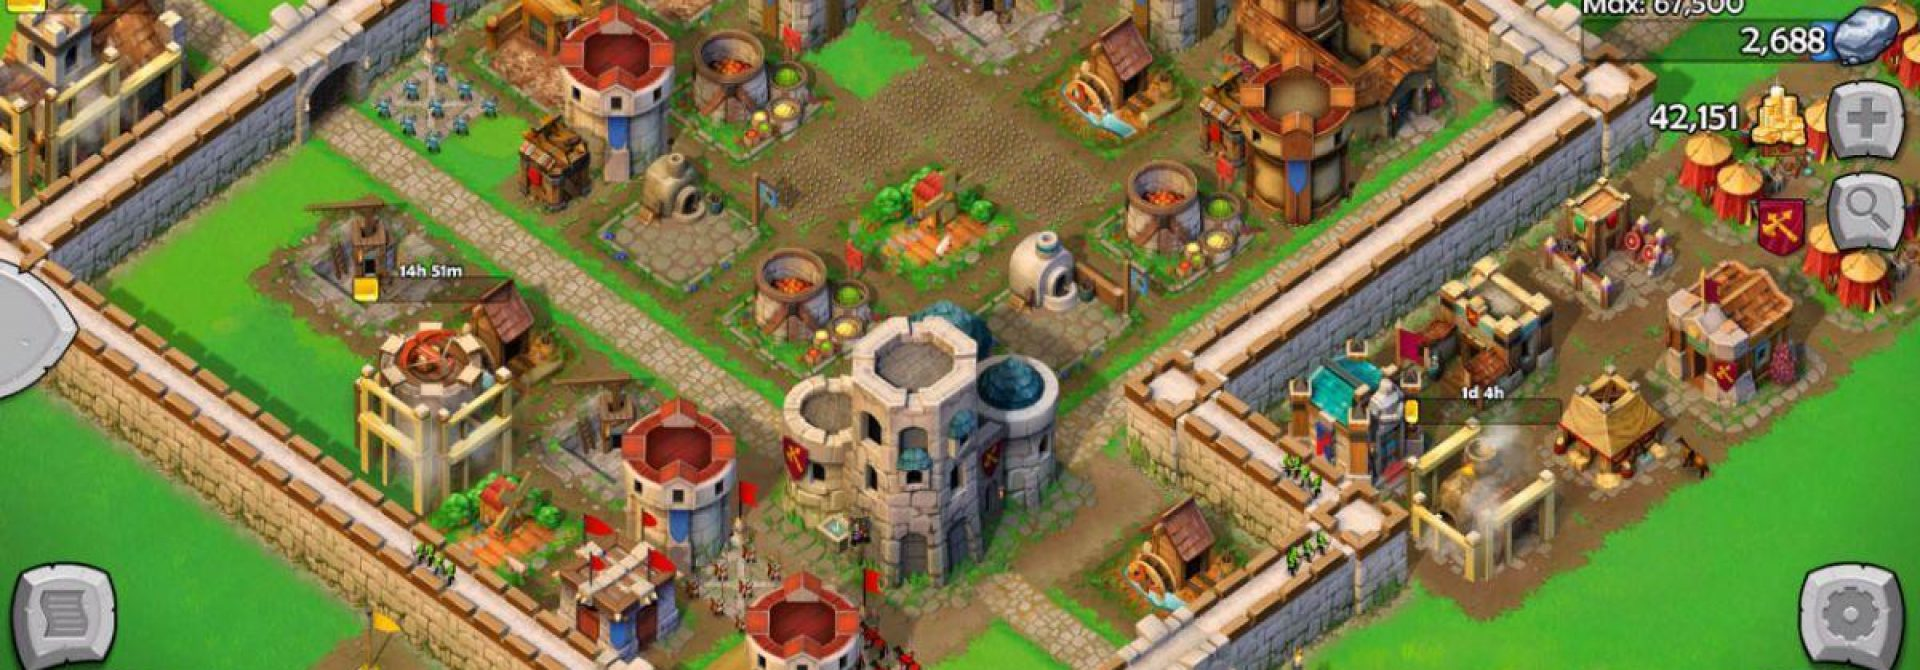 Age of Empires: Castle Siege Hits Android